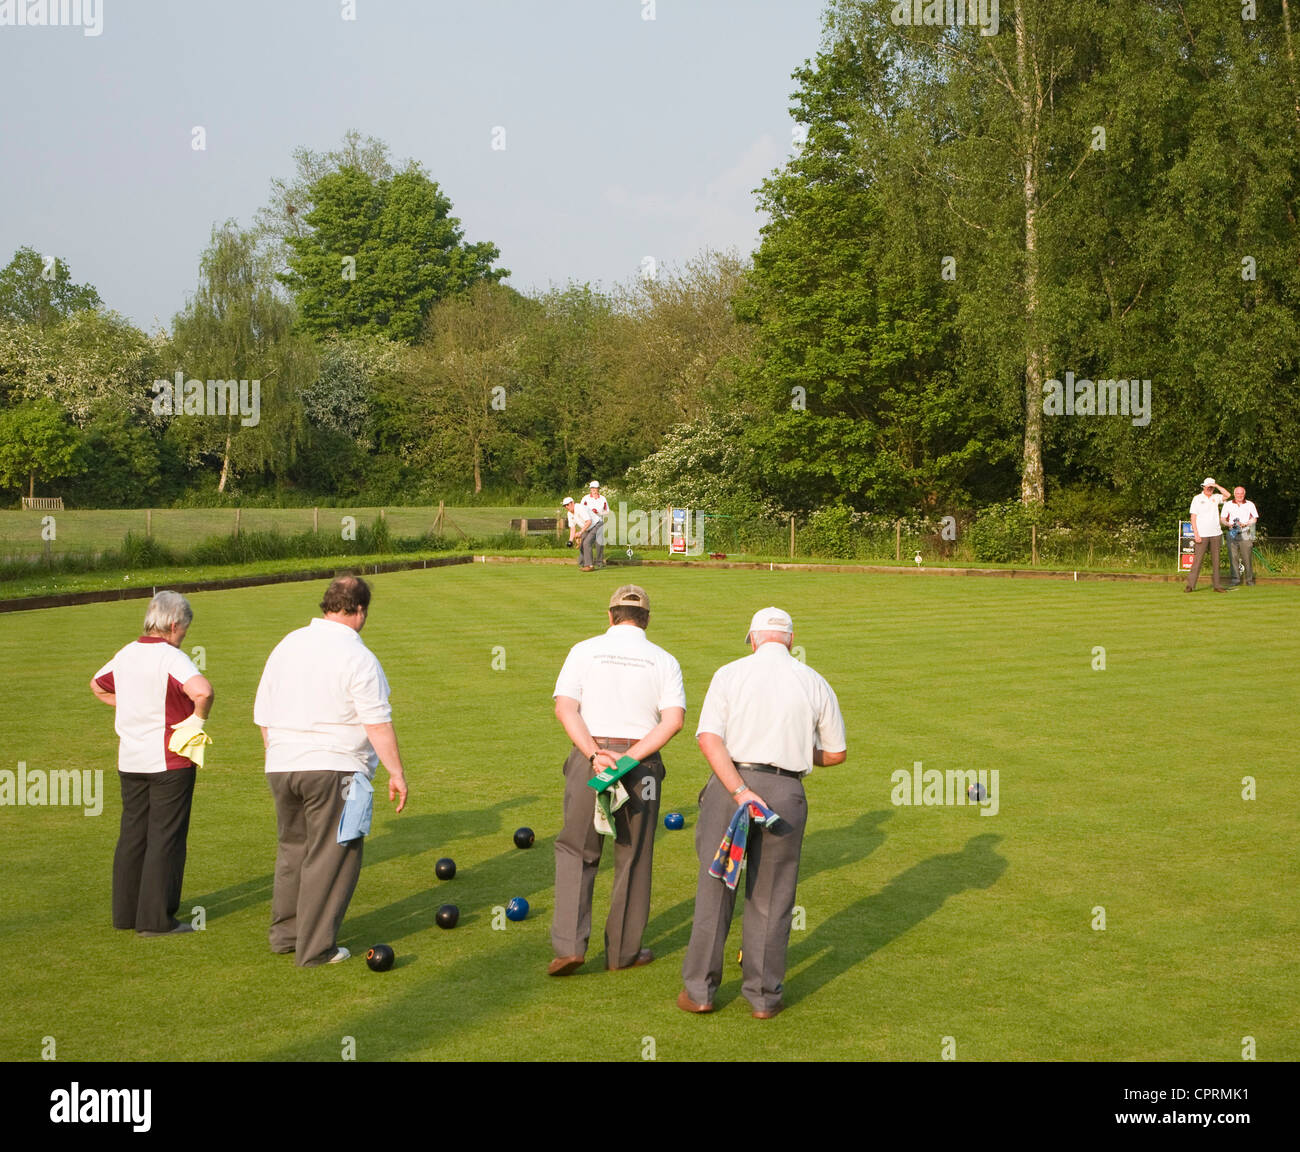 People playing lawn bowls at Clare, Suffolk, England - Stock Image